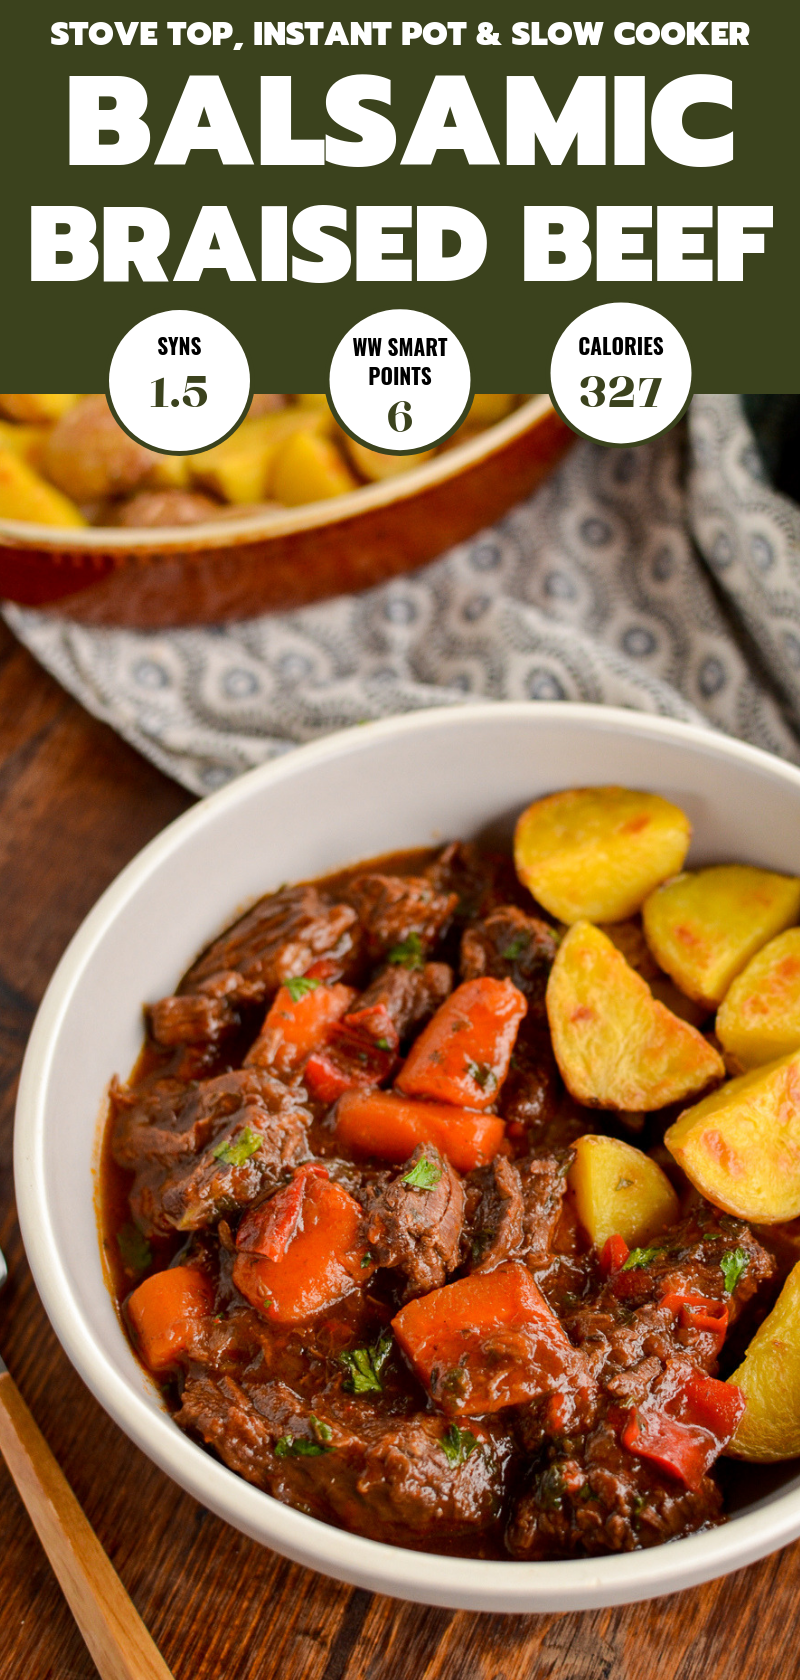 grey bowl of balsamic braised beef with Yukon gold roasted potatoes